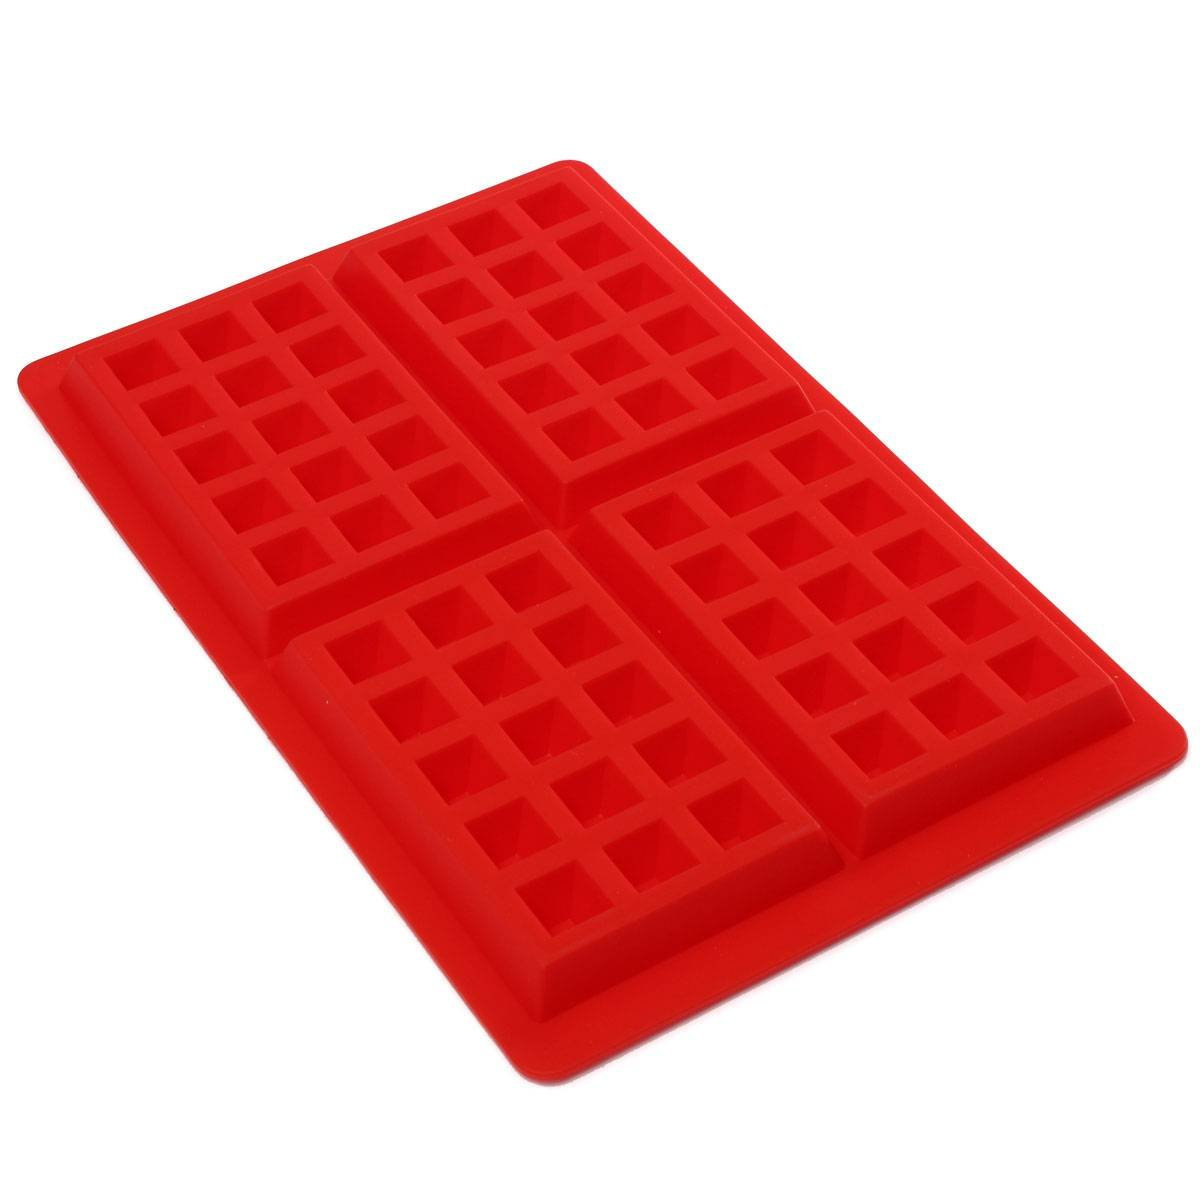 STONCEL 4-Cavity DIY Mini Waffles Cake Chocolate Pan Silicone Tray Mold Baking Mould Tool Red